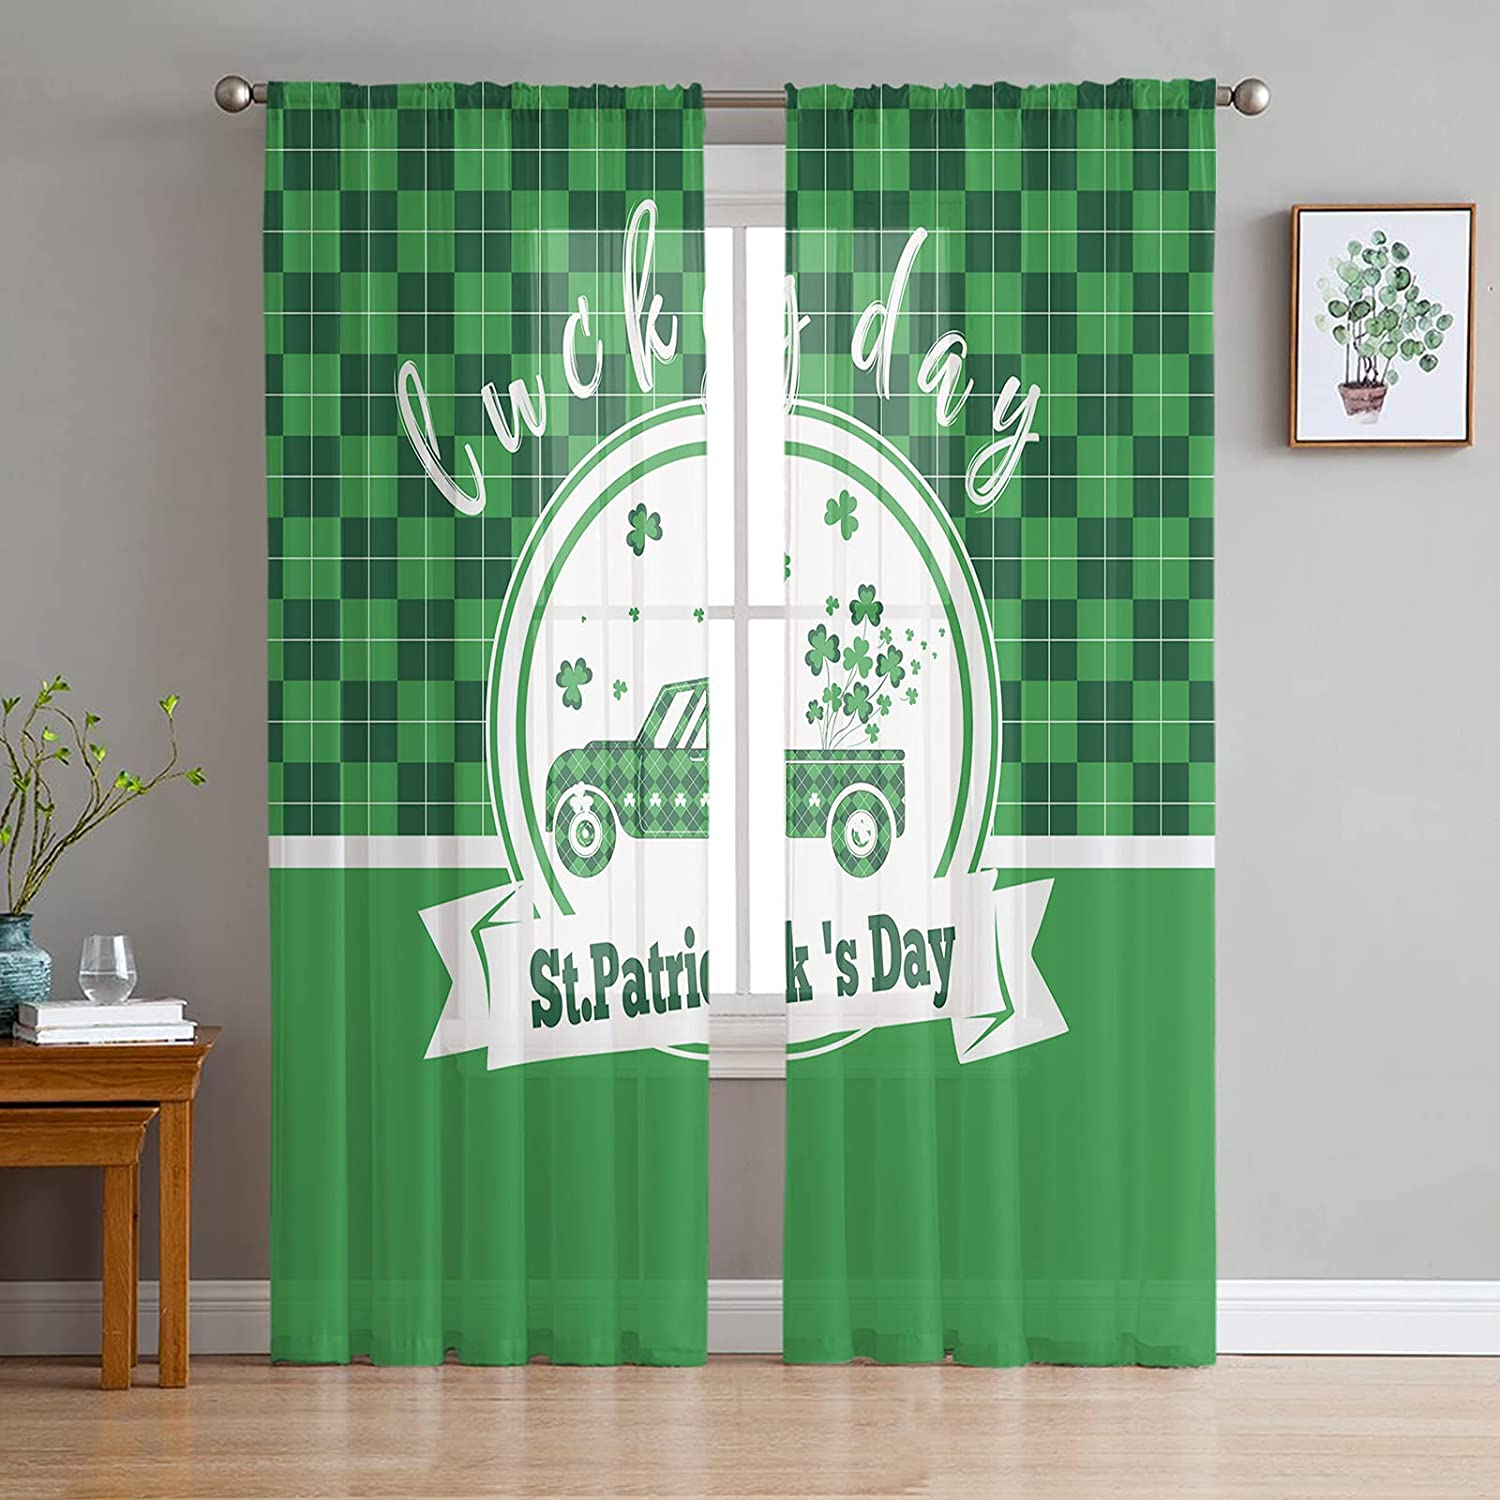 Sheer Voile Tampa Mall trust Chiffon Window Curtains Soft Wrinkle Touch with Fre